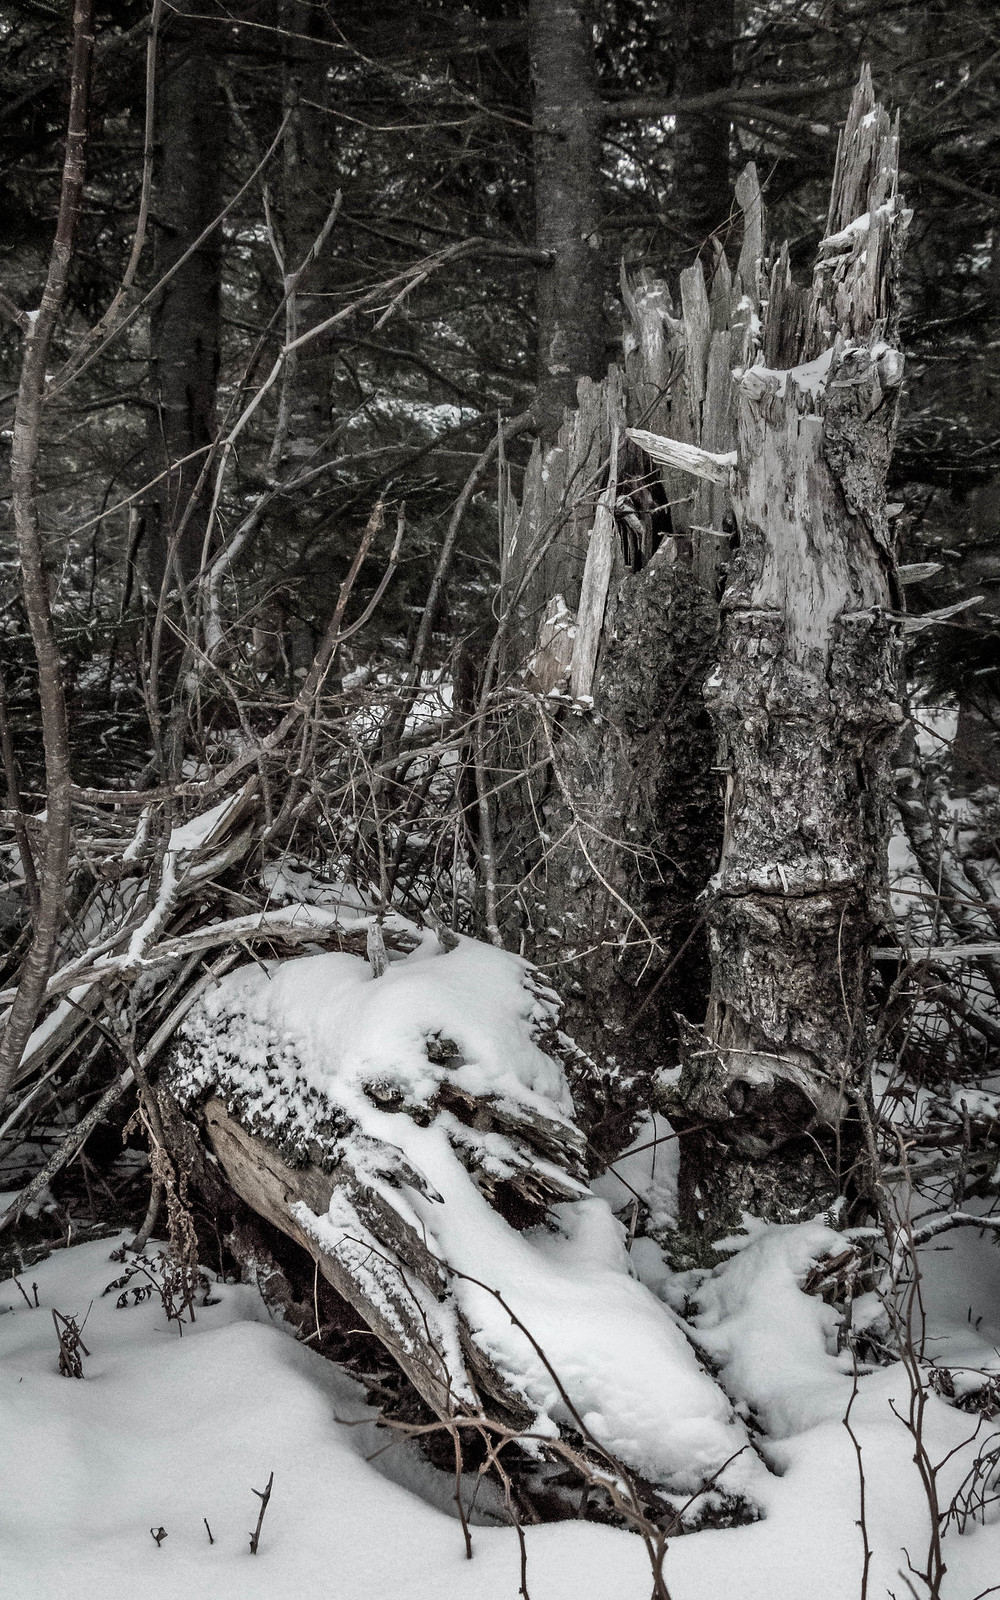 snowy forest decay